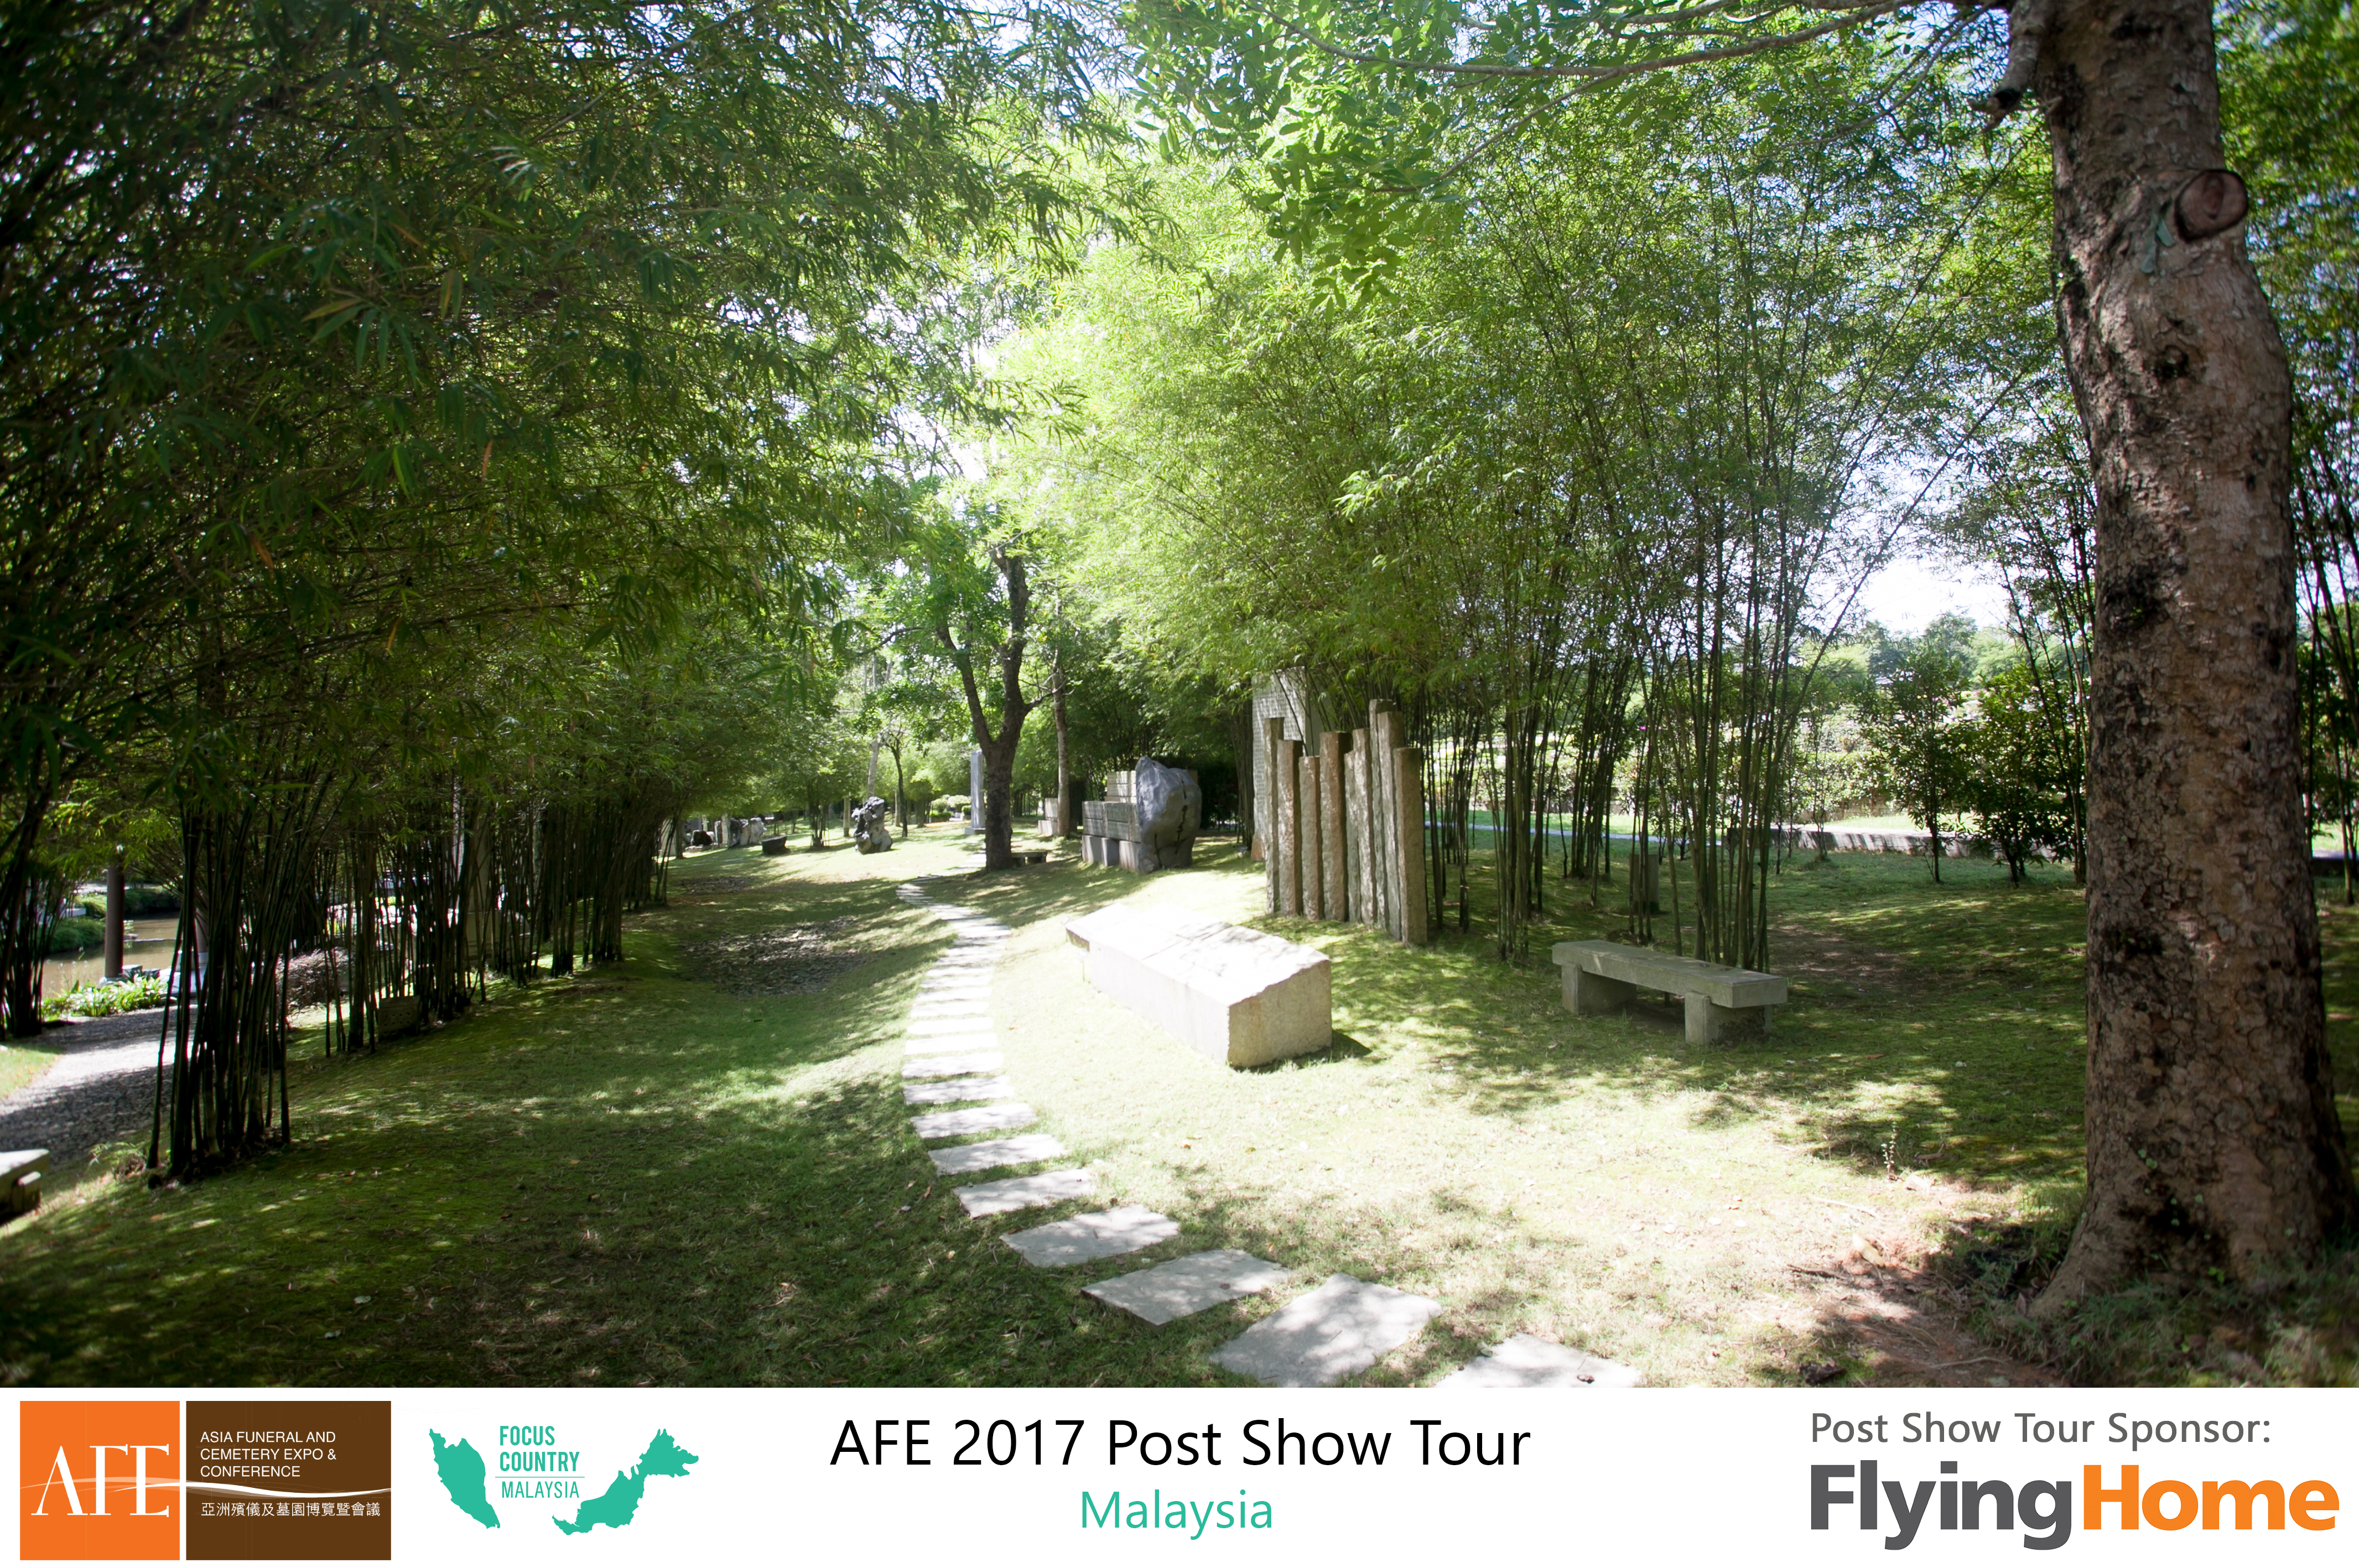 AFE Post Show Tour 2017 Day 2 - 49